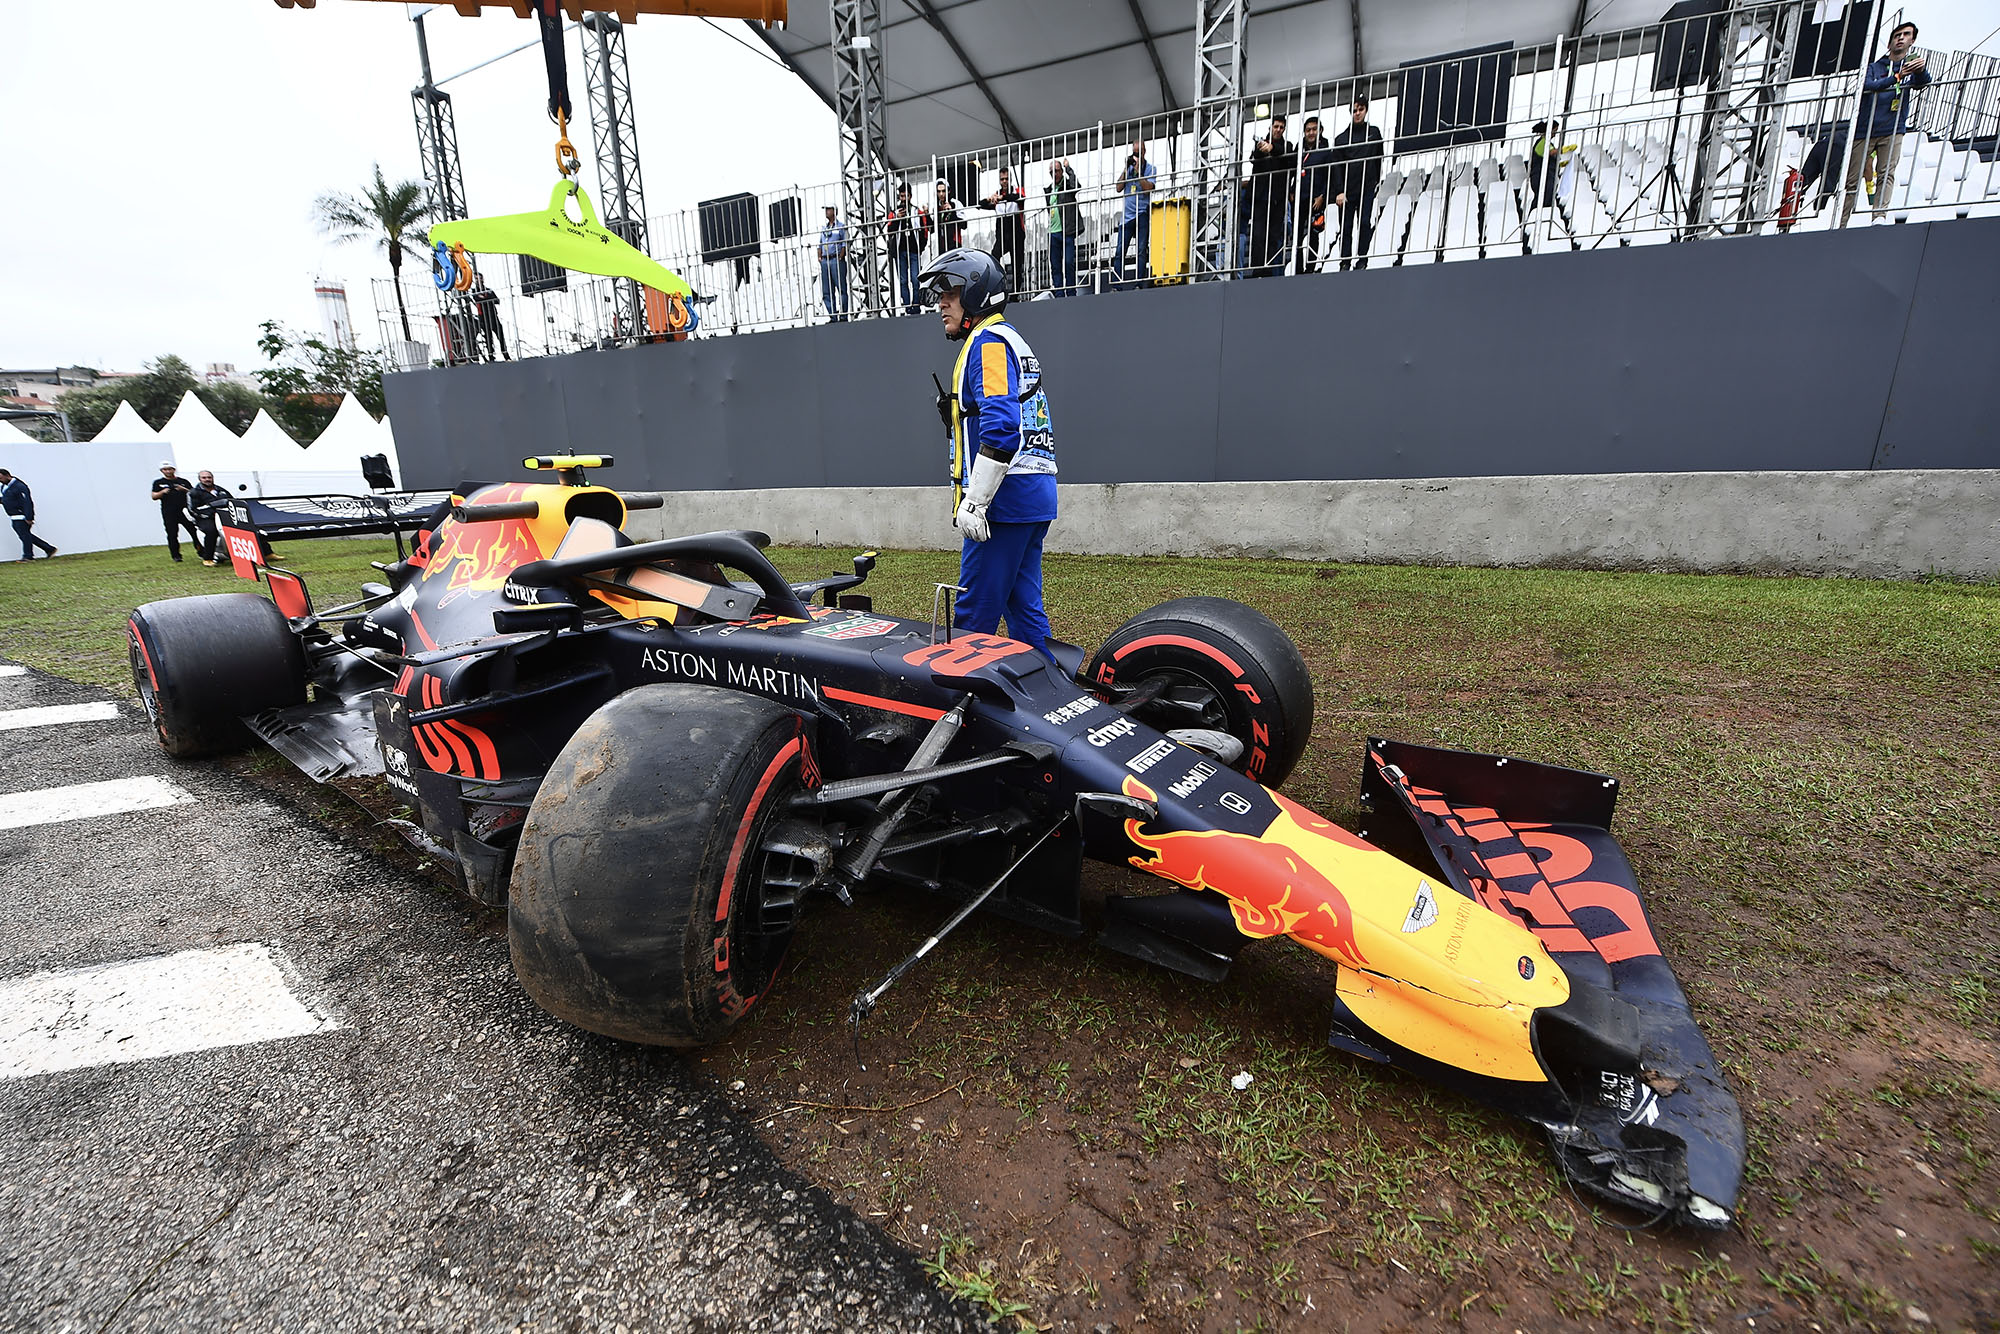 Alexander Albon's crashed car during Friday practice for the 2019 F1 Brazilian Grand Prix